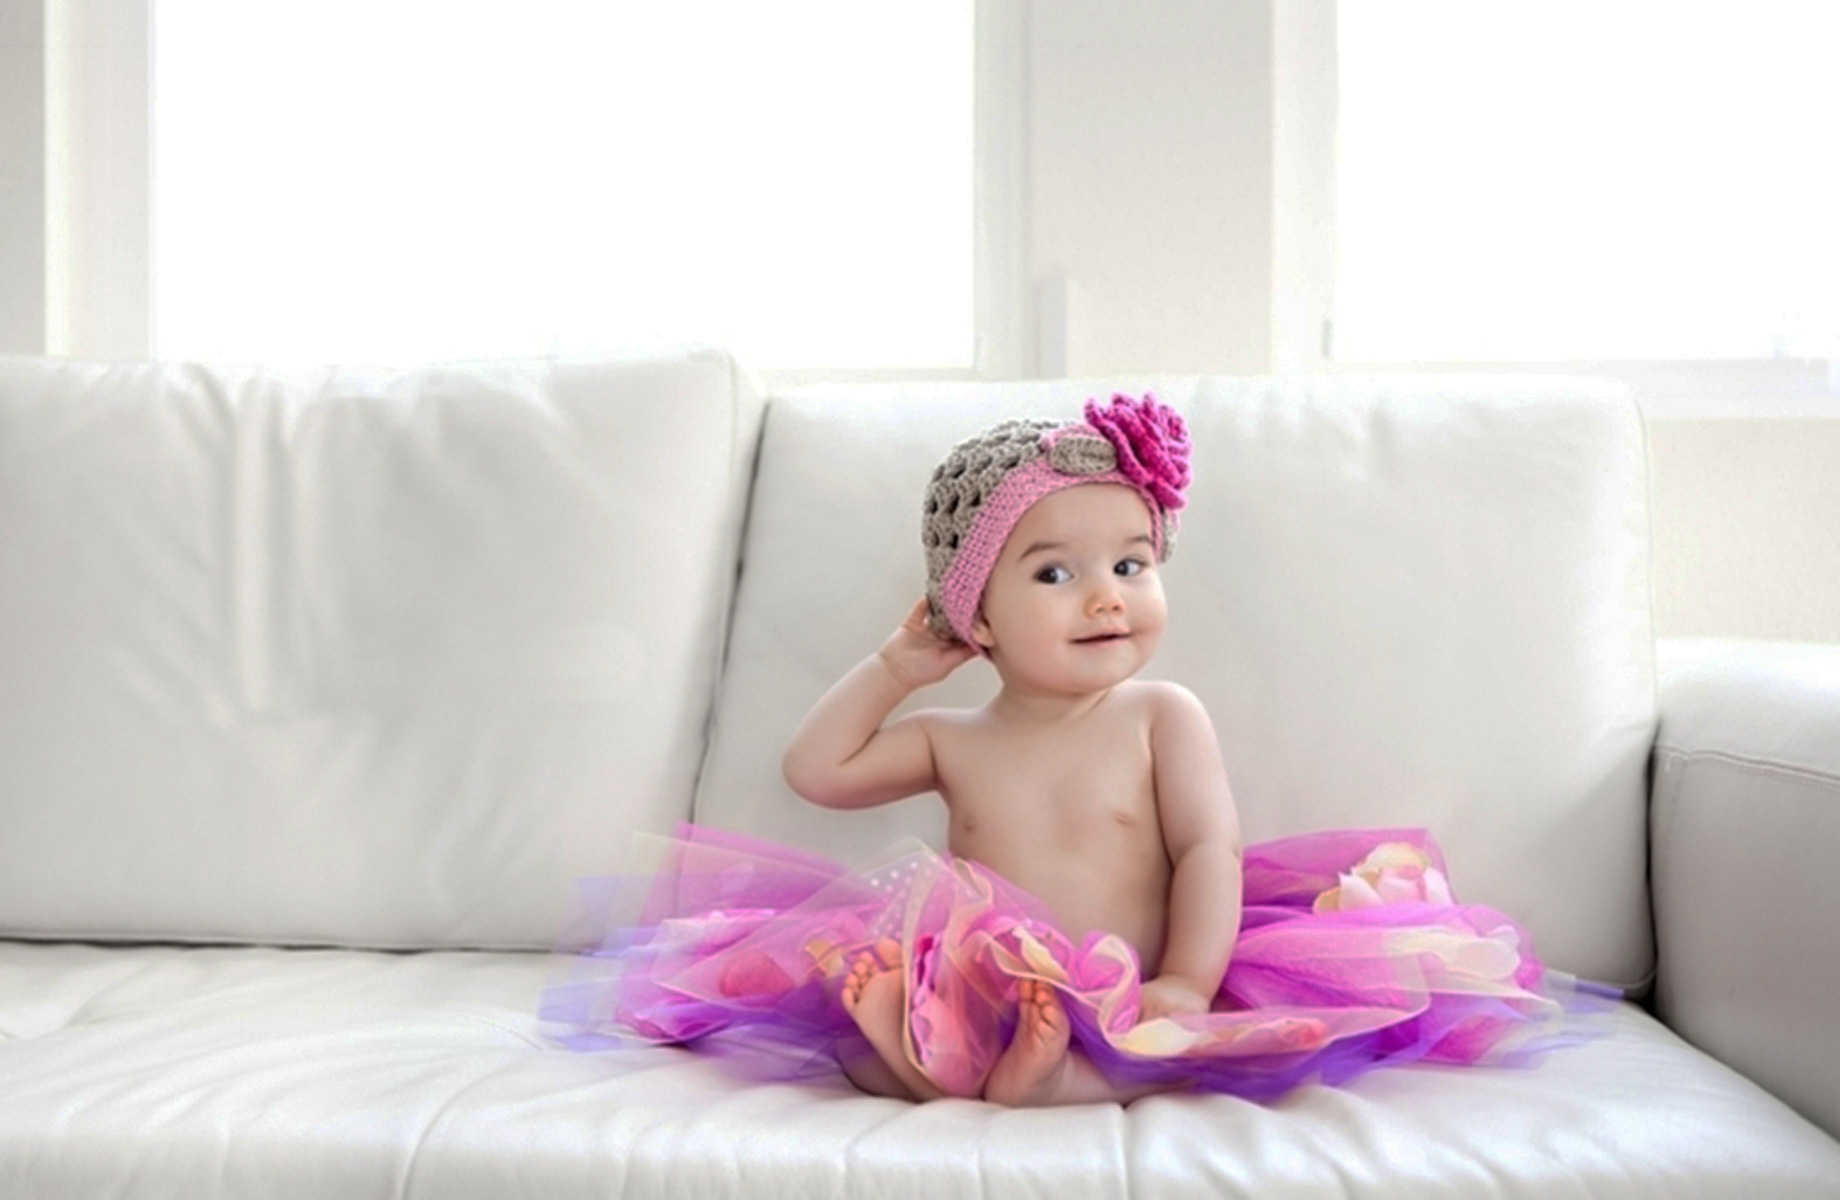 Adorable HDQ Backgrounds of Babies, 1840x1200 px